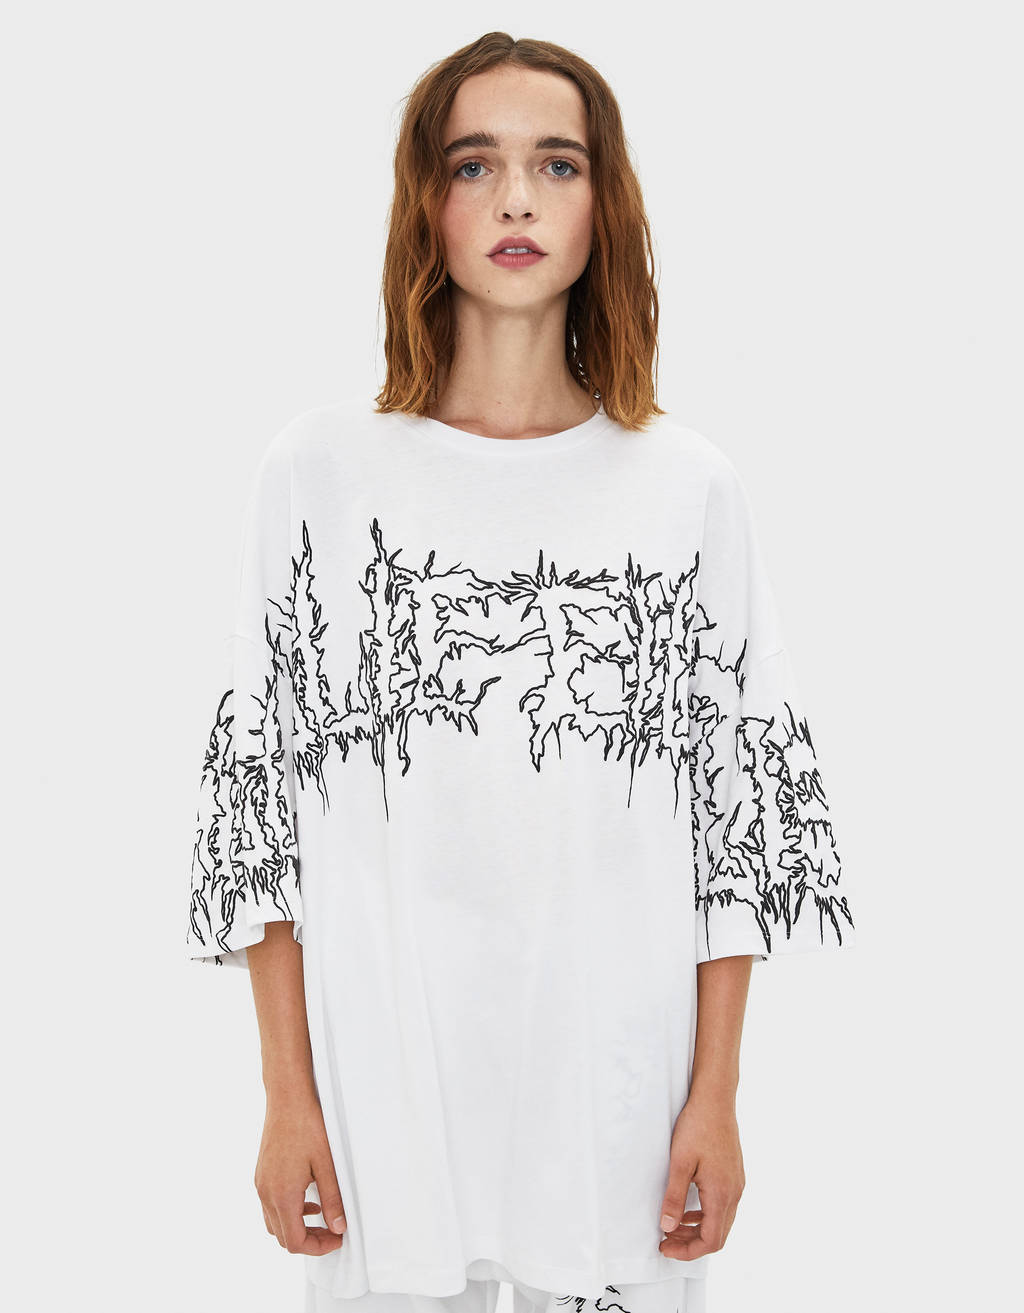 T-Shirt Billie Eilish x Bershka